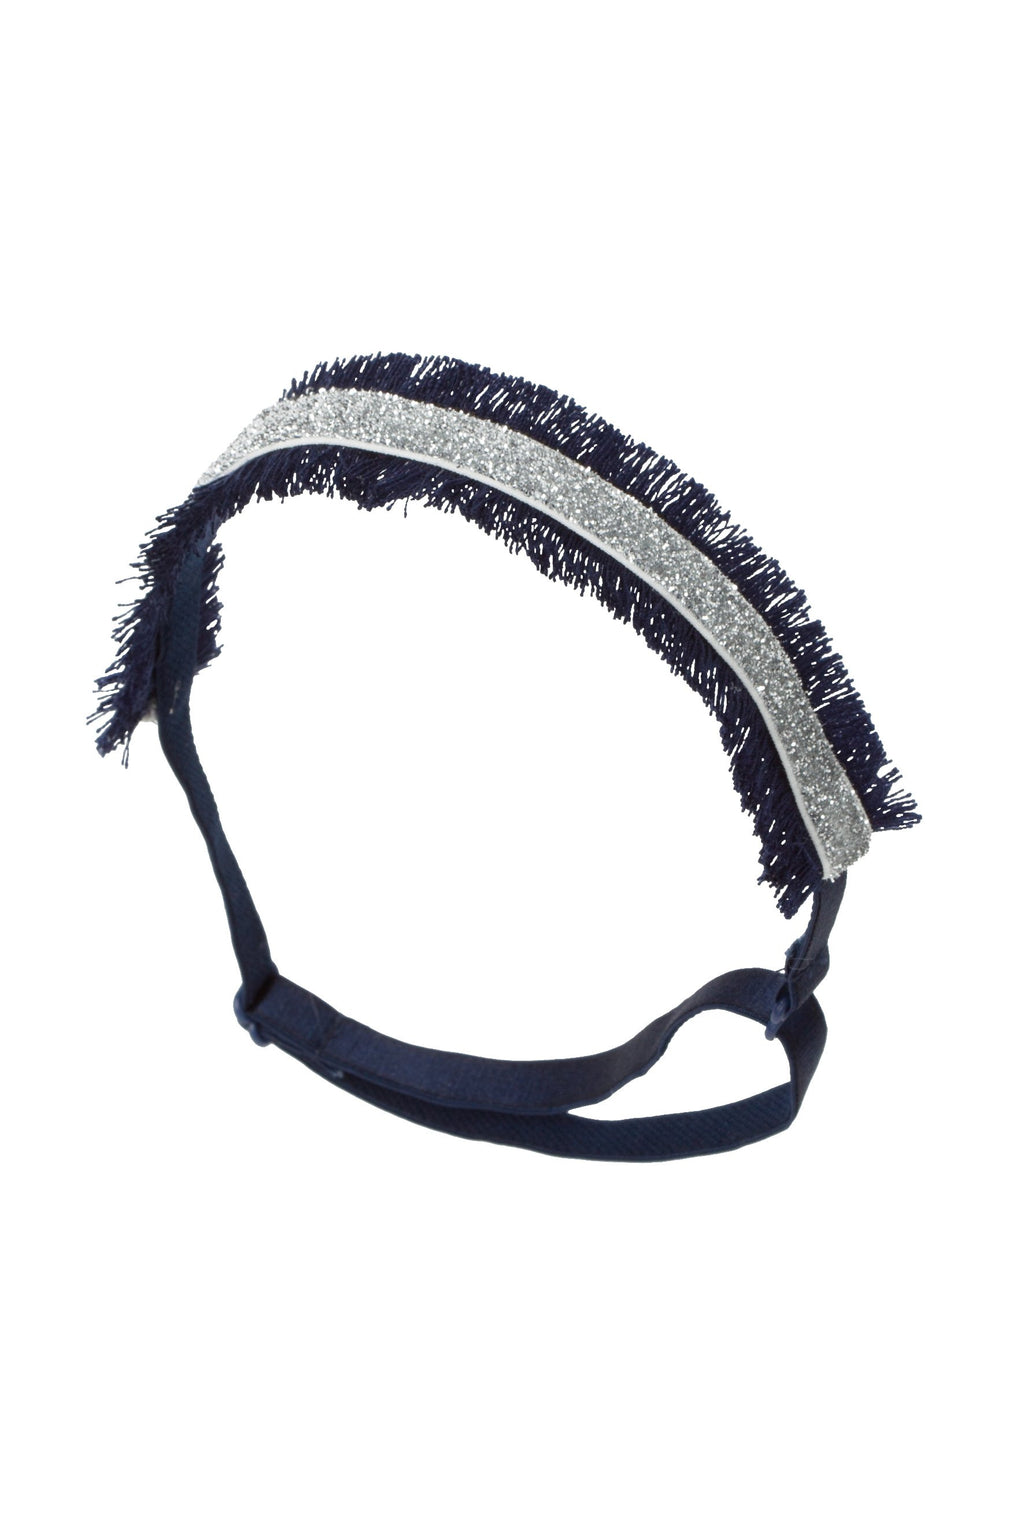 Flat Fringe Wrap - Navy/Silver - PROJECT 6, modest fashion